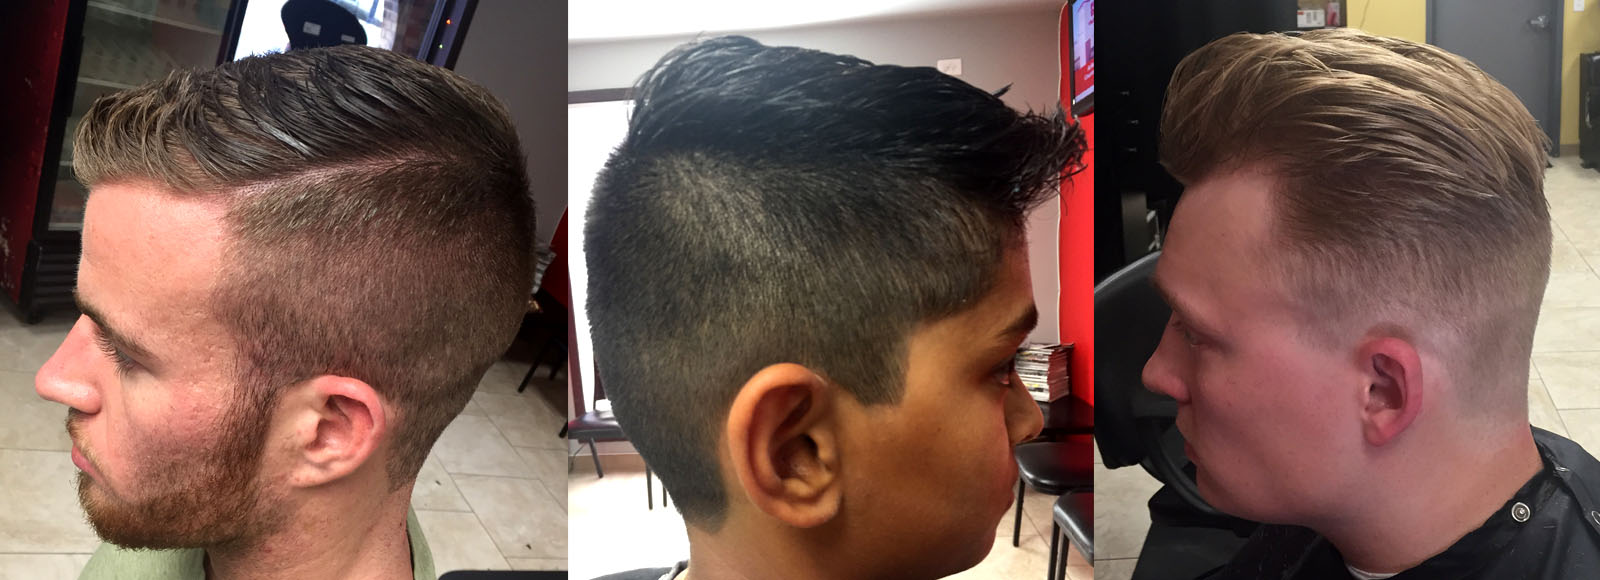 Hair salon in vernon hills il hair salon near me man up schedule your appointment winobraniefo Choice Image